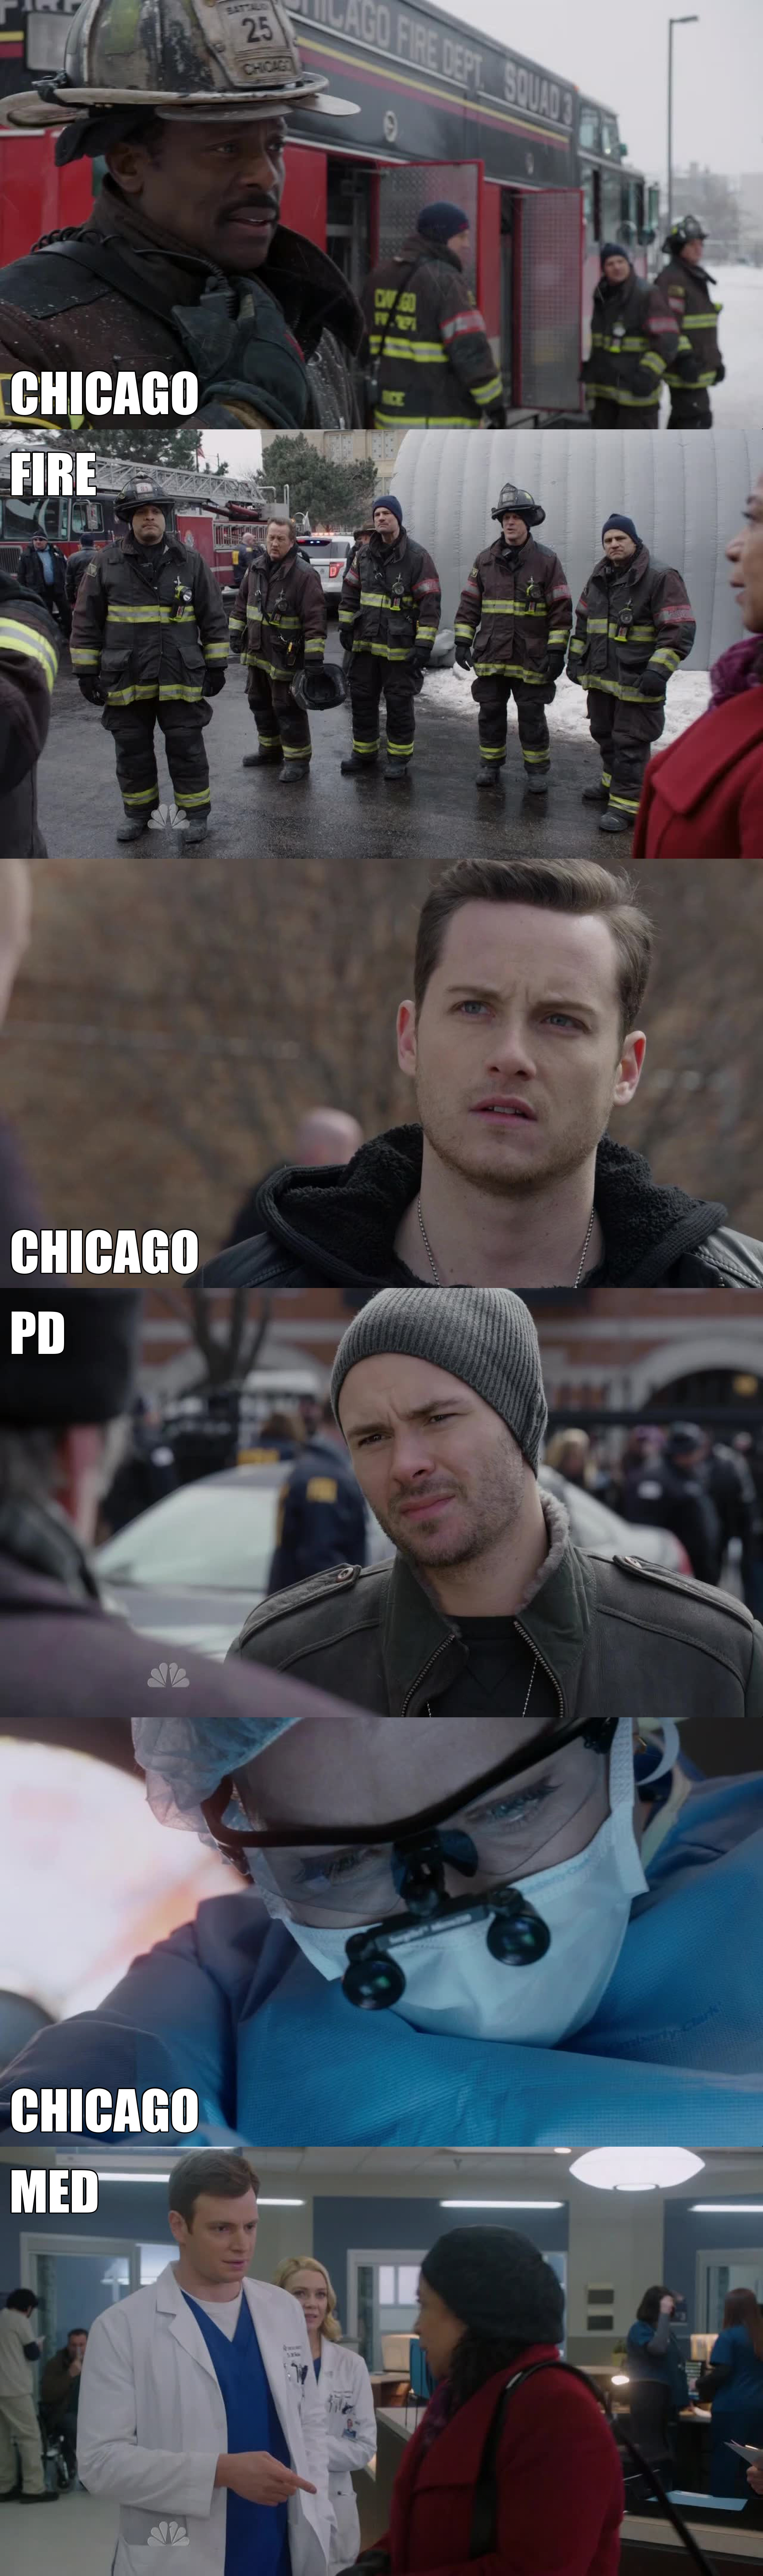 this episode was perfect ! So intense ! Can't wait to see more Chicago Fire, Chicago PD, and Chicago Med episodes !!